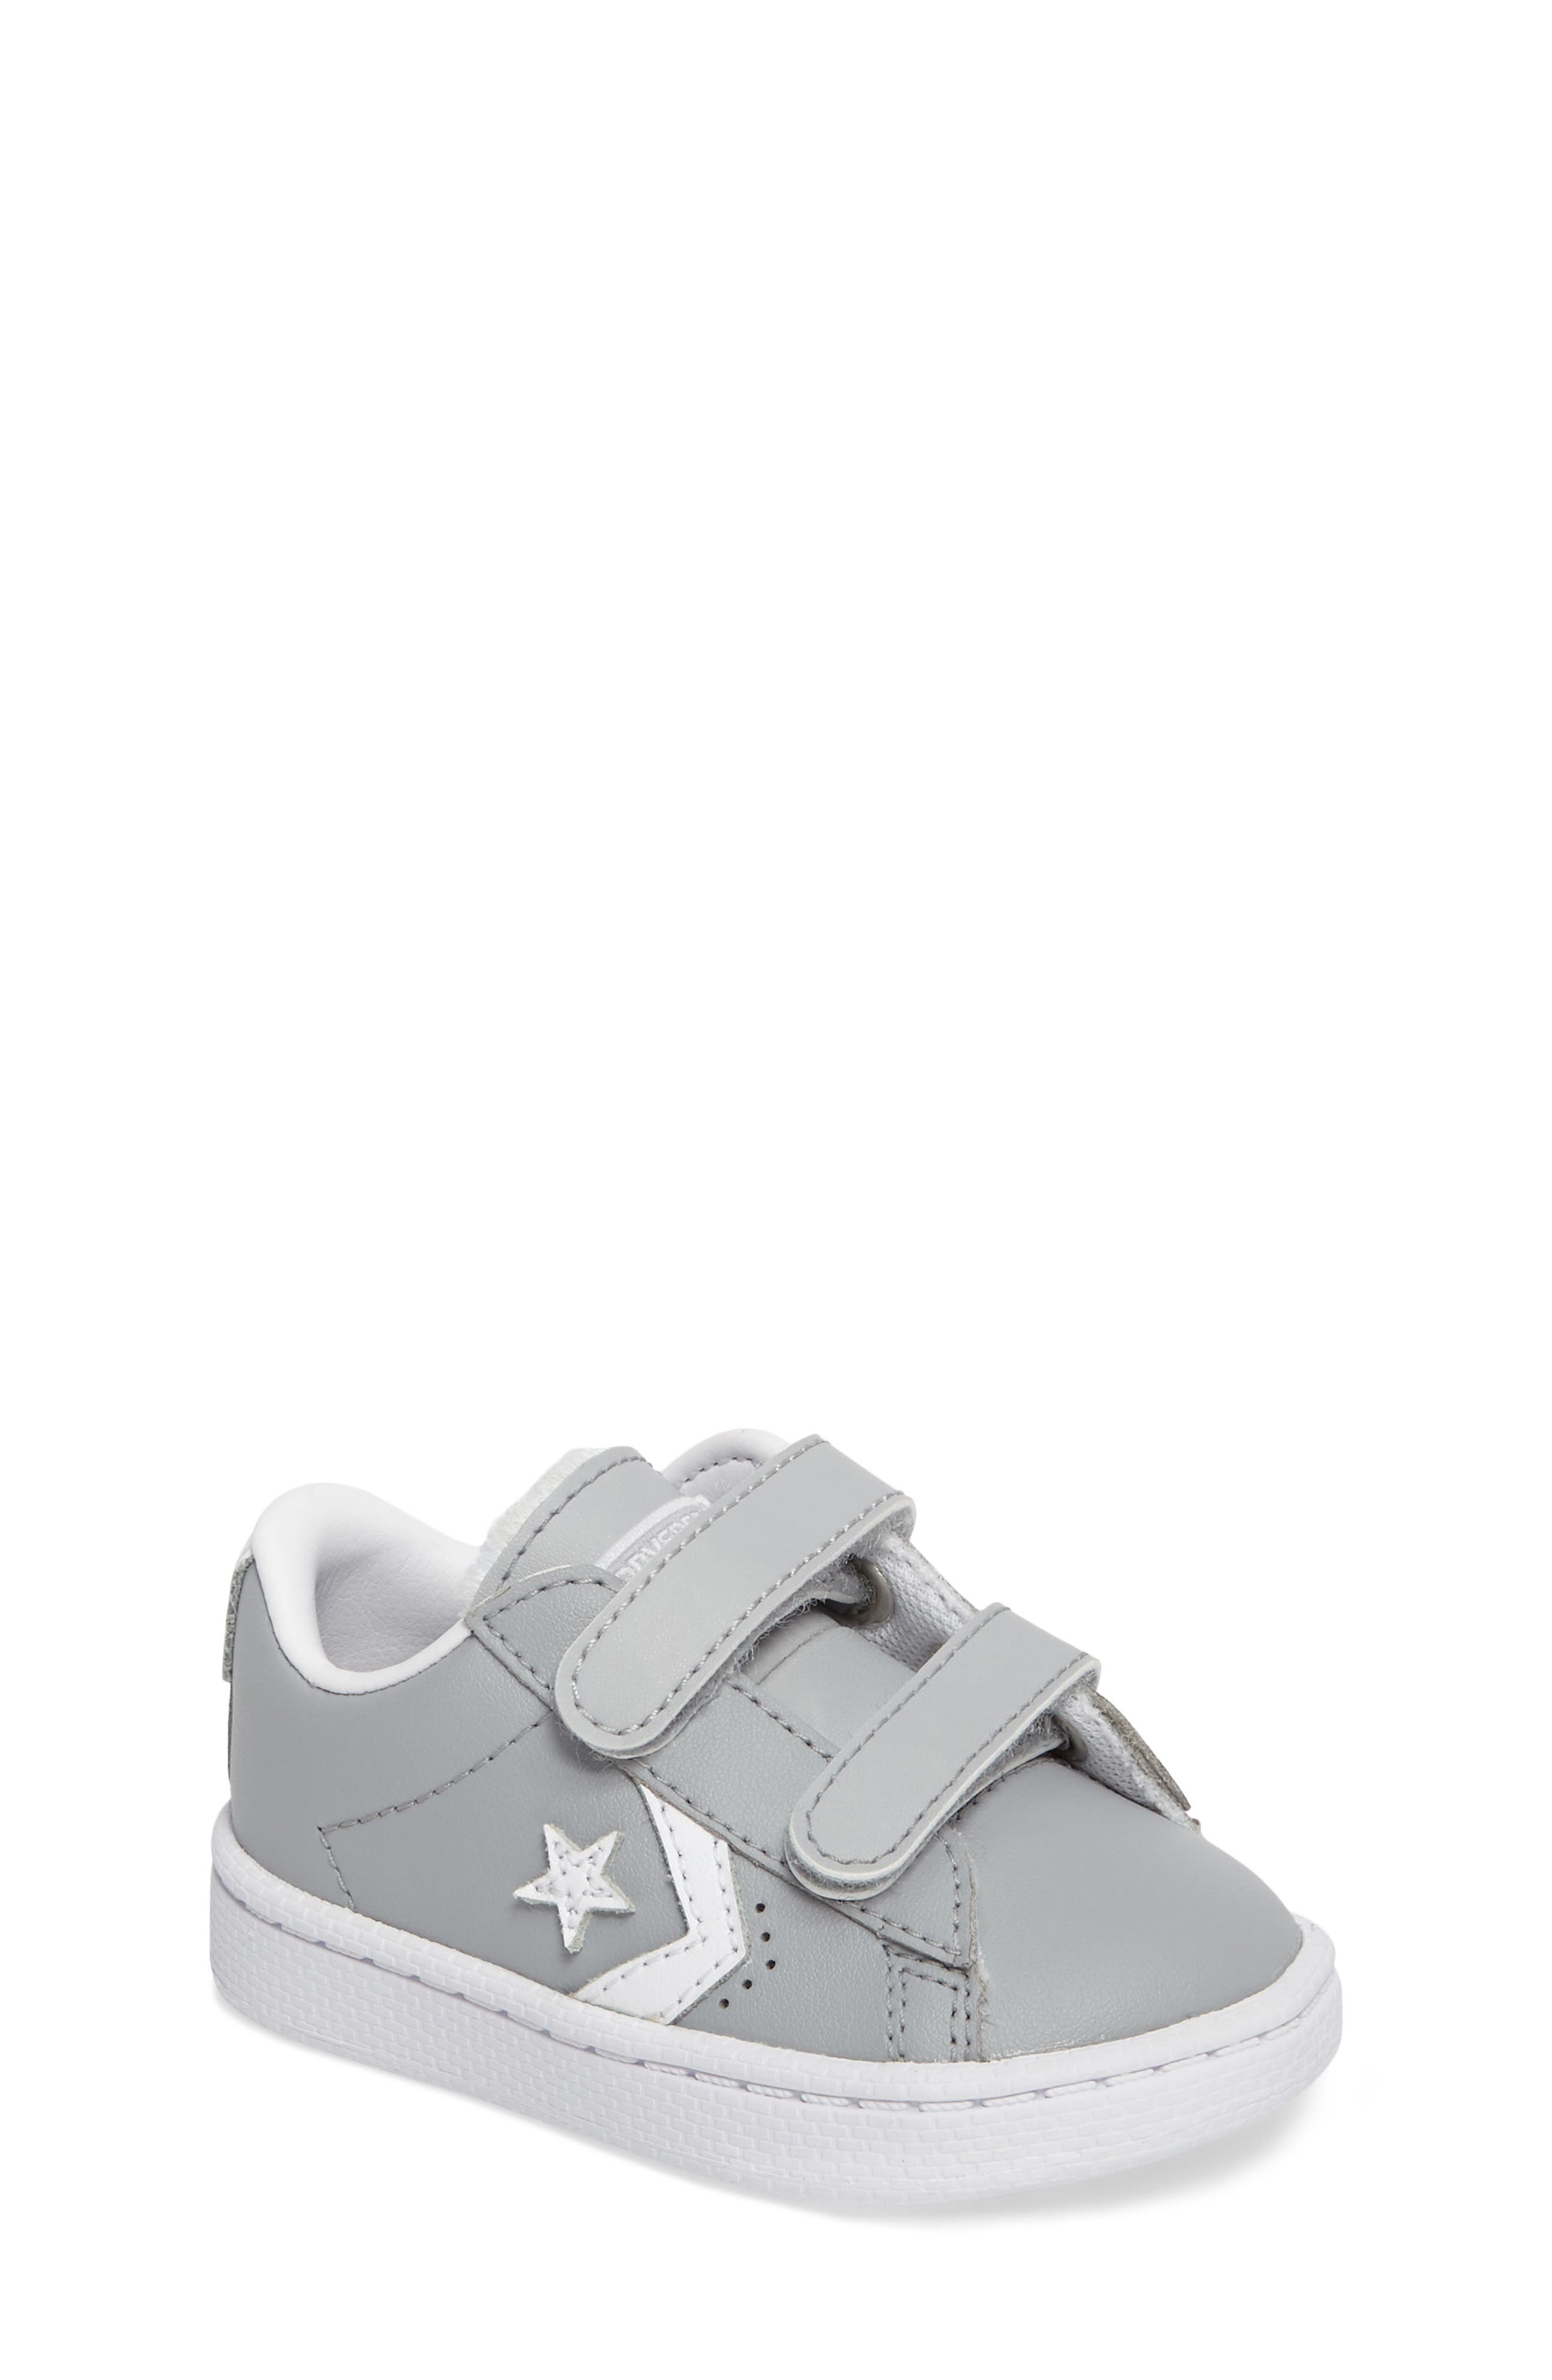 Converse Pro Leather Low Top Sneaker (Baby, Walker, & Toddler)